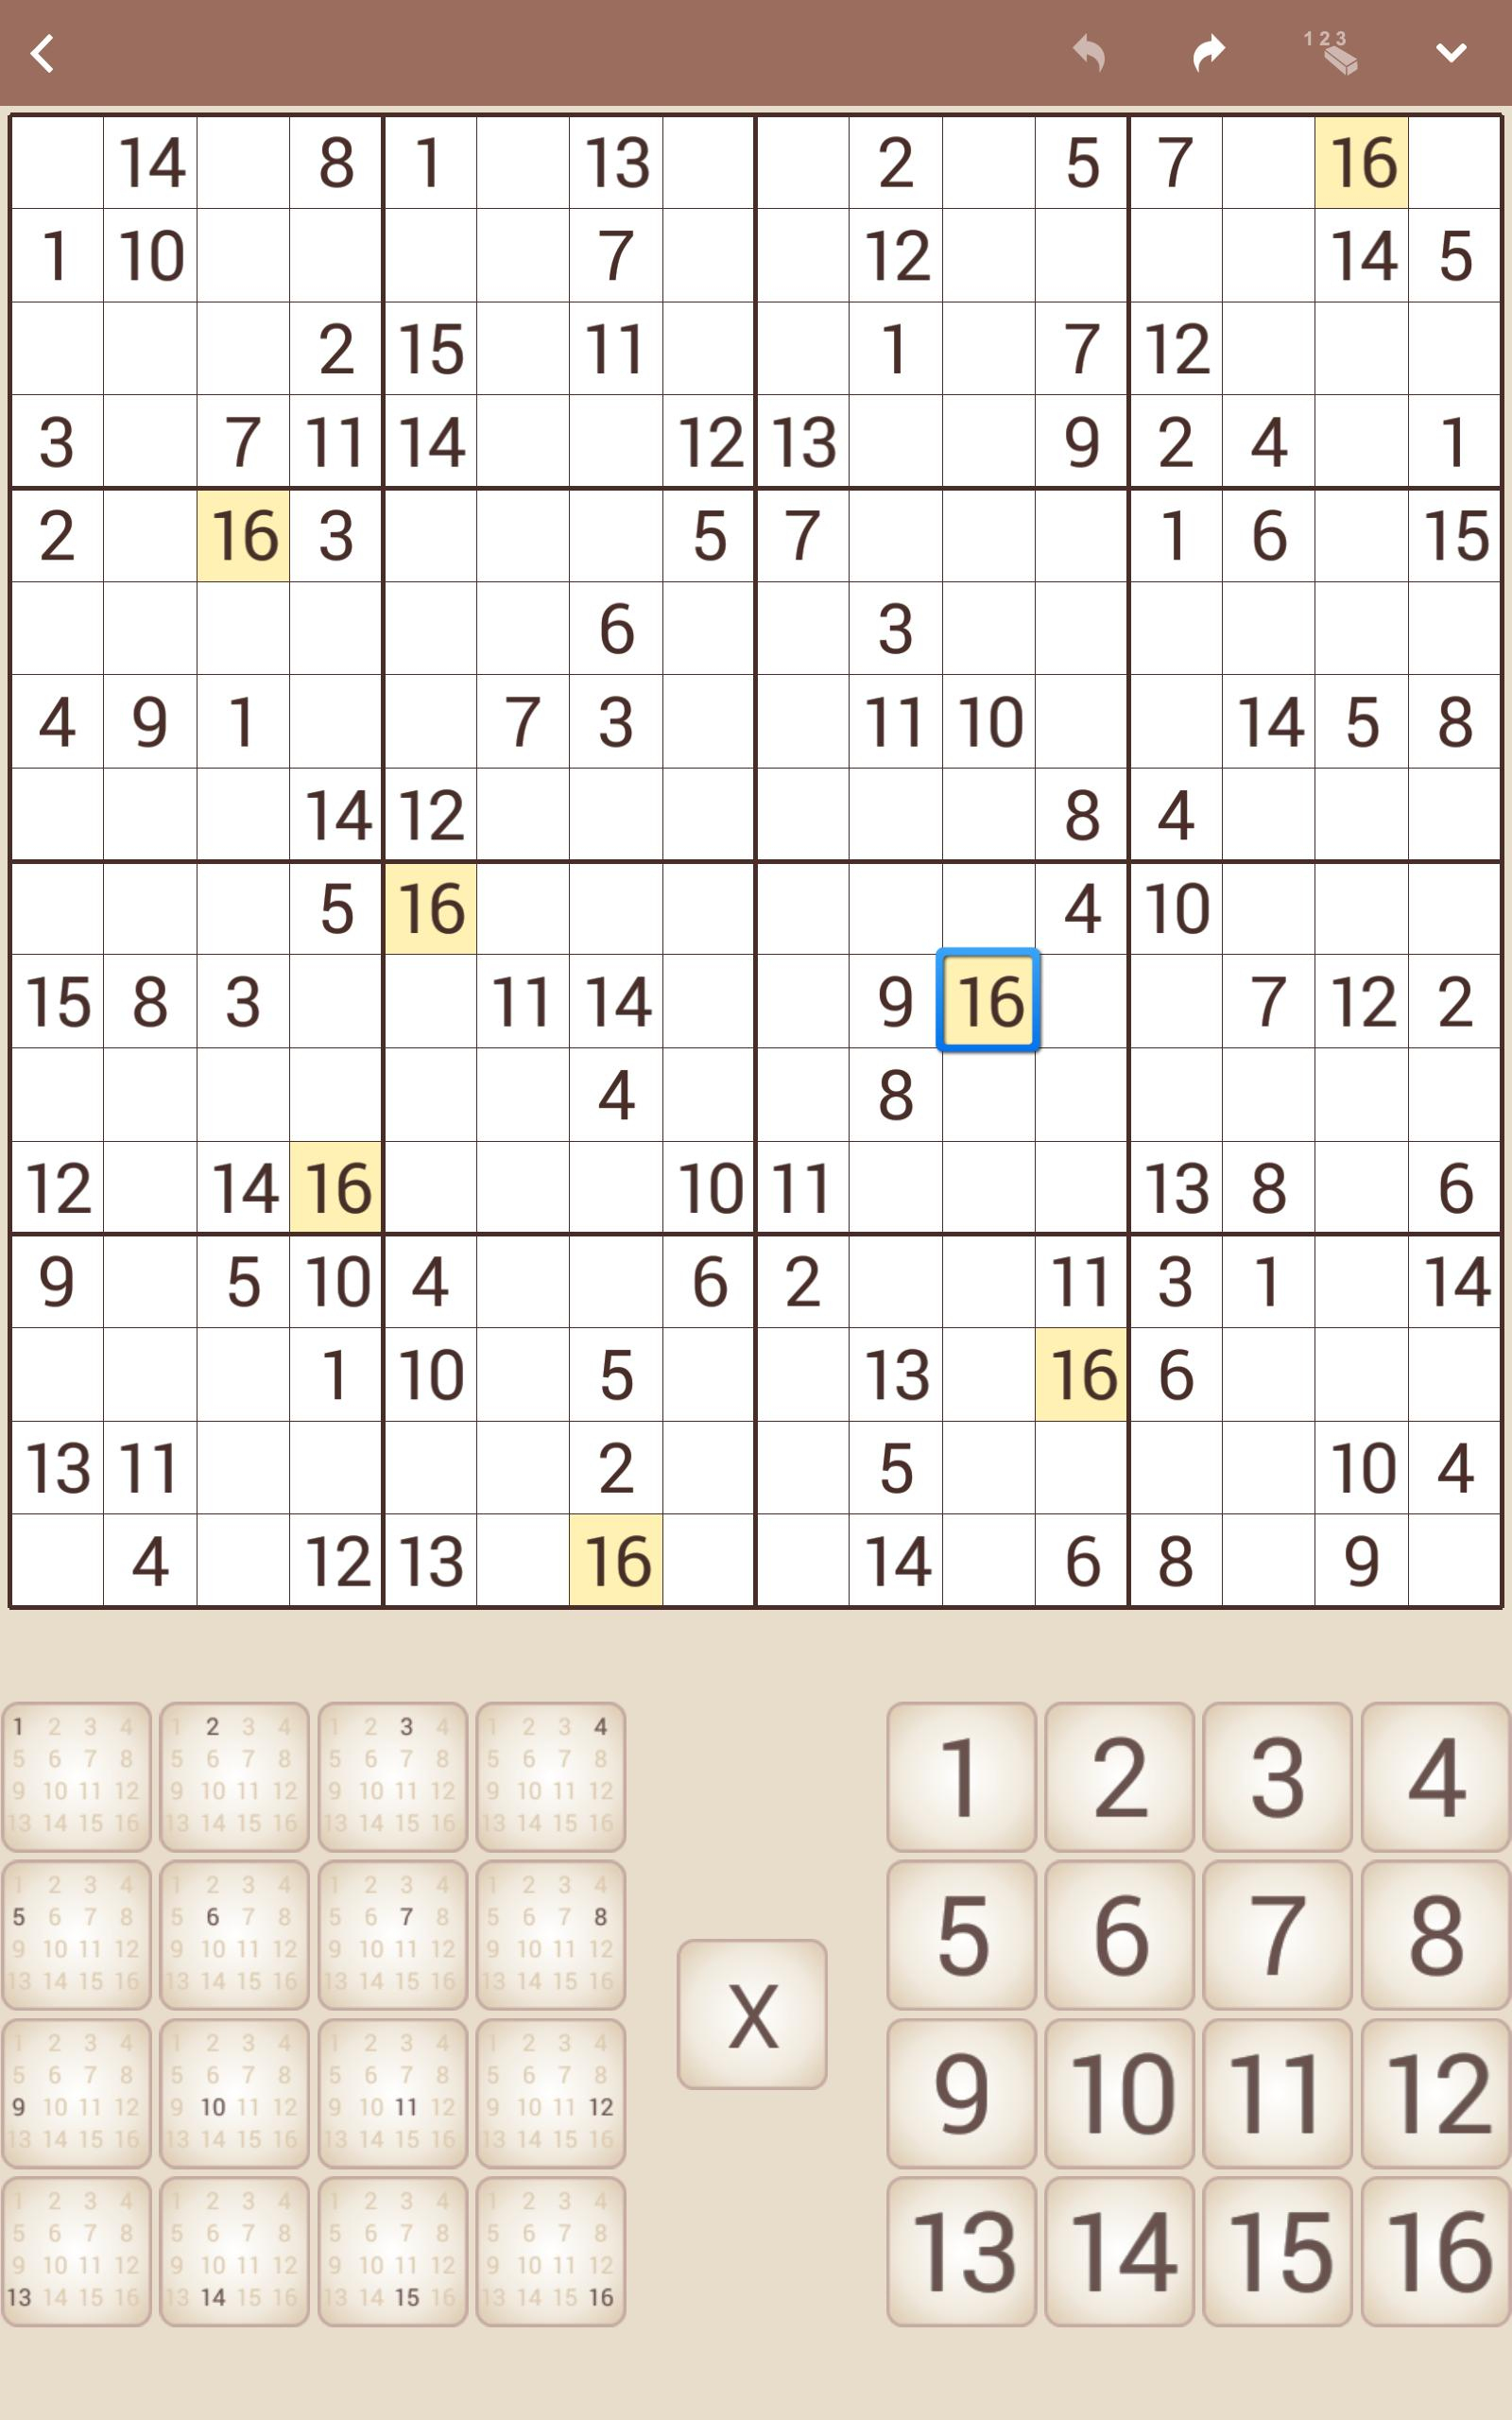 Conceptis Sudoku For Android - Apk Download